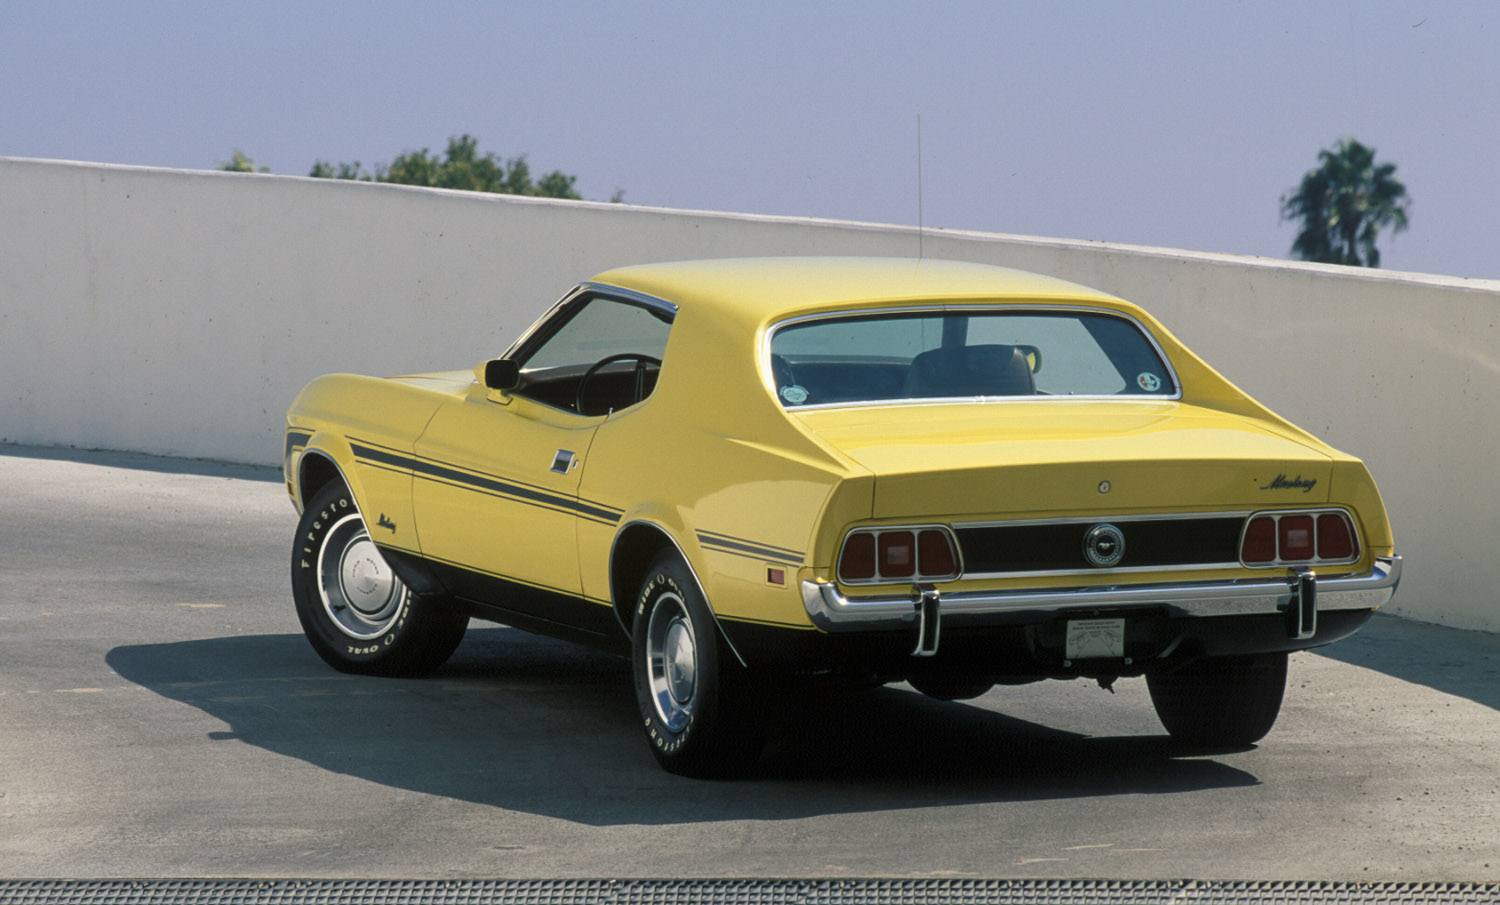 Ford Mustang 1973 - Picture 16616